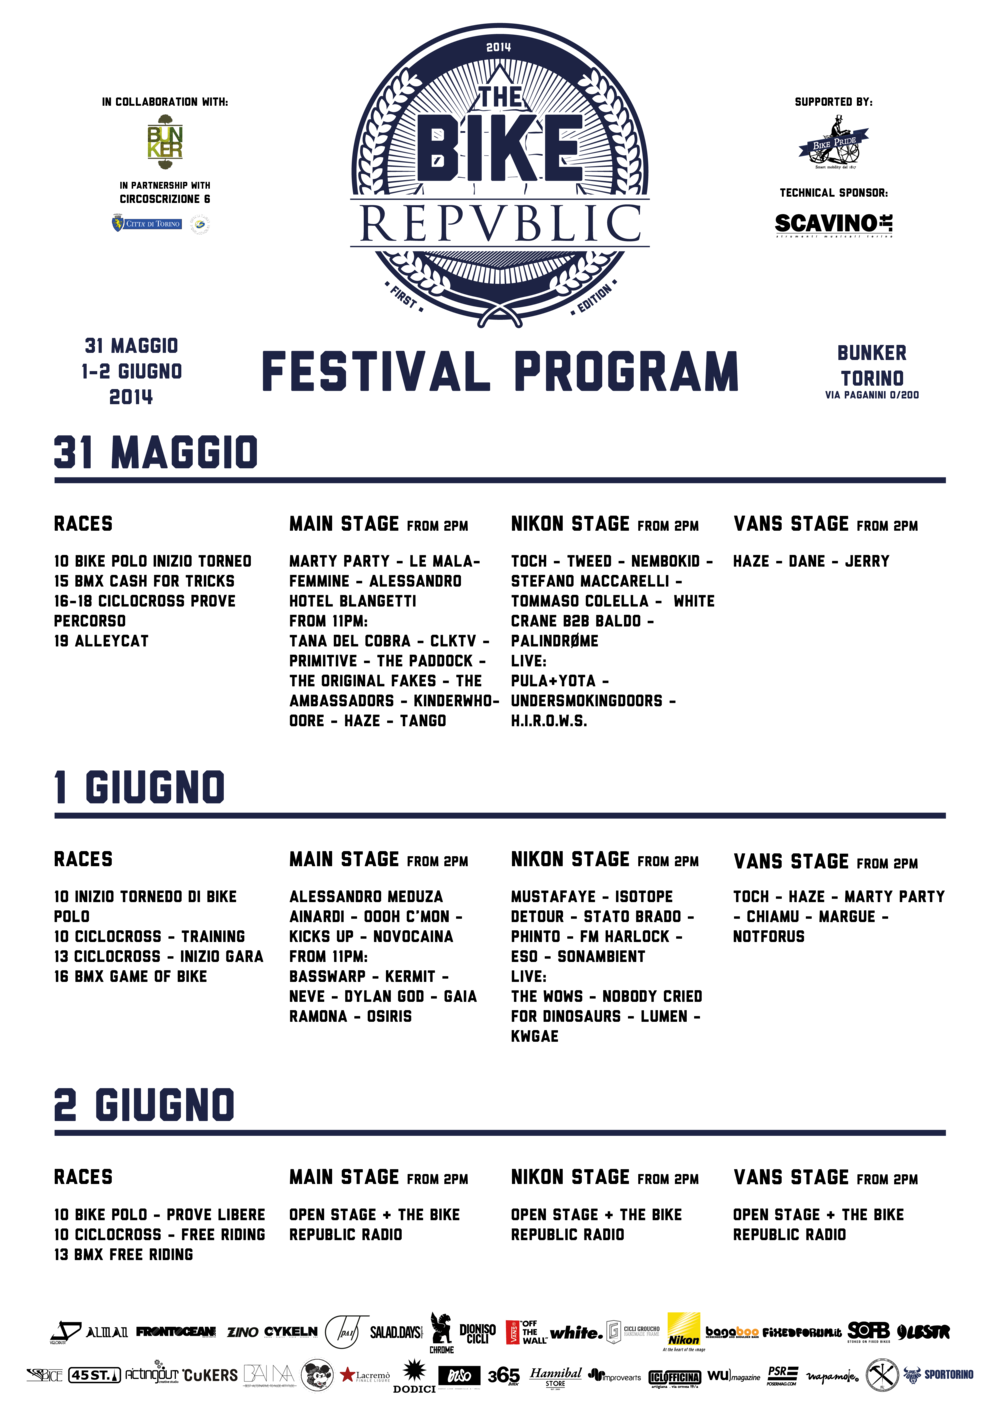 The-Bike-Republic-Festival-program-A3-01.png